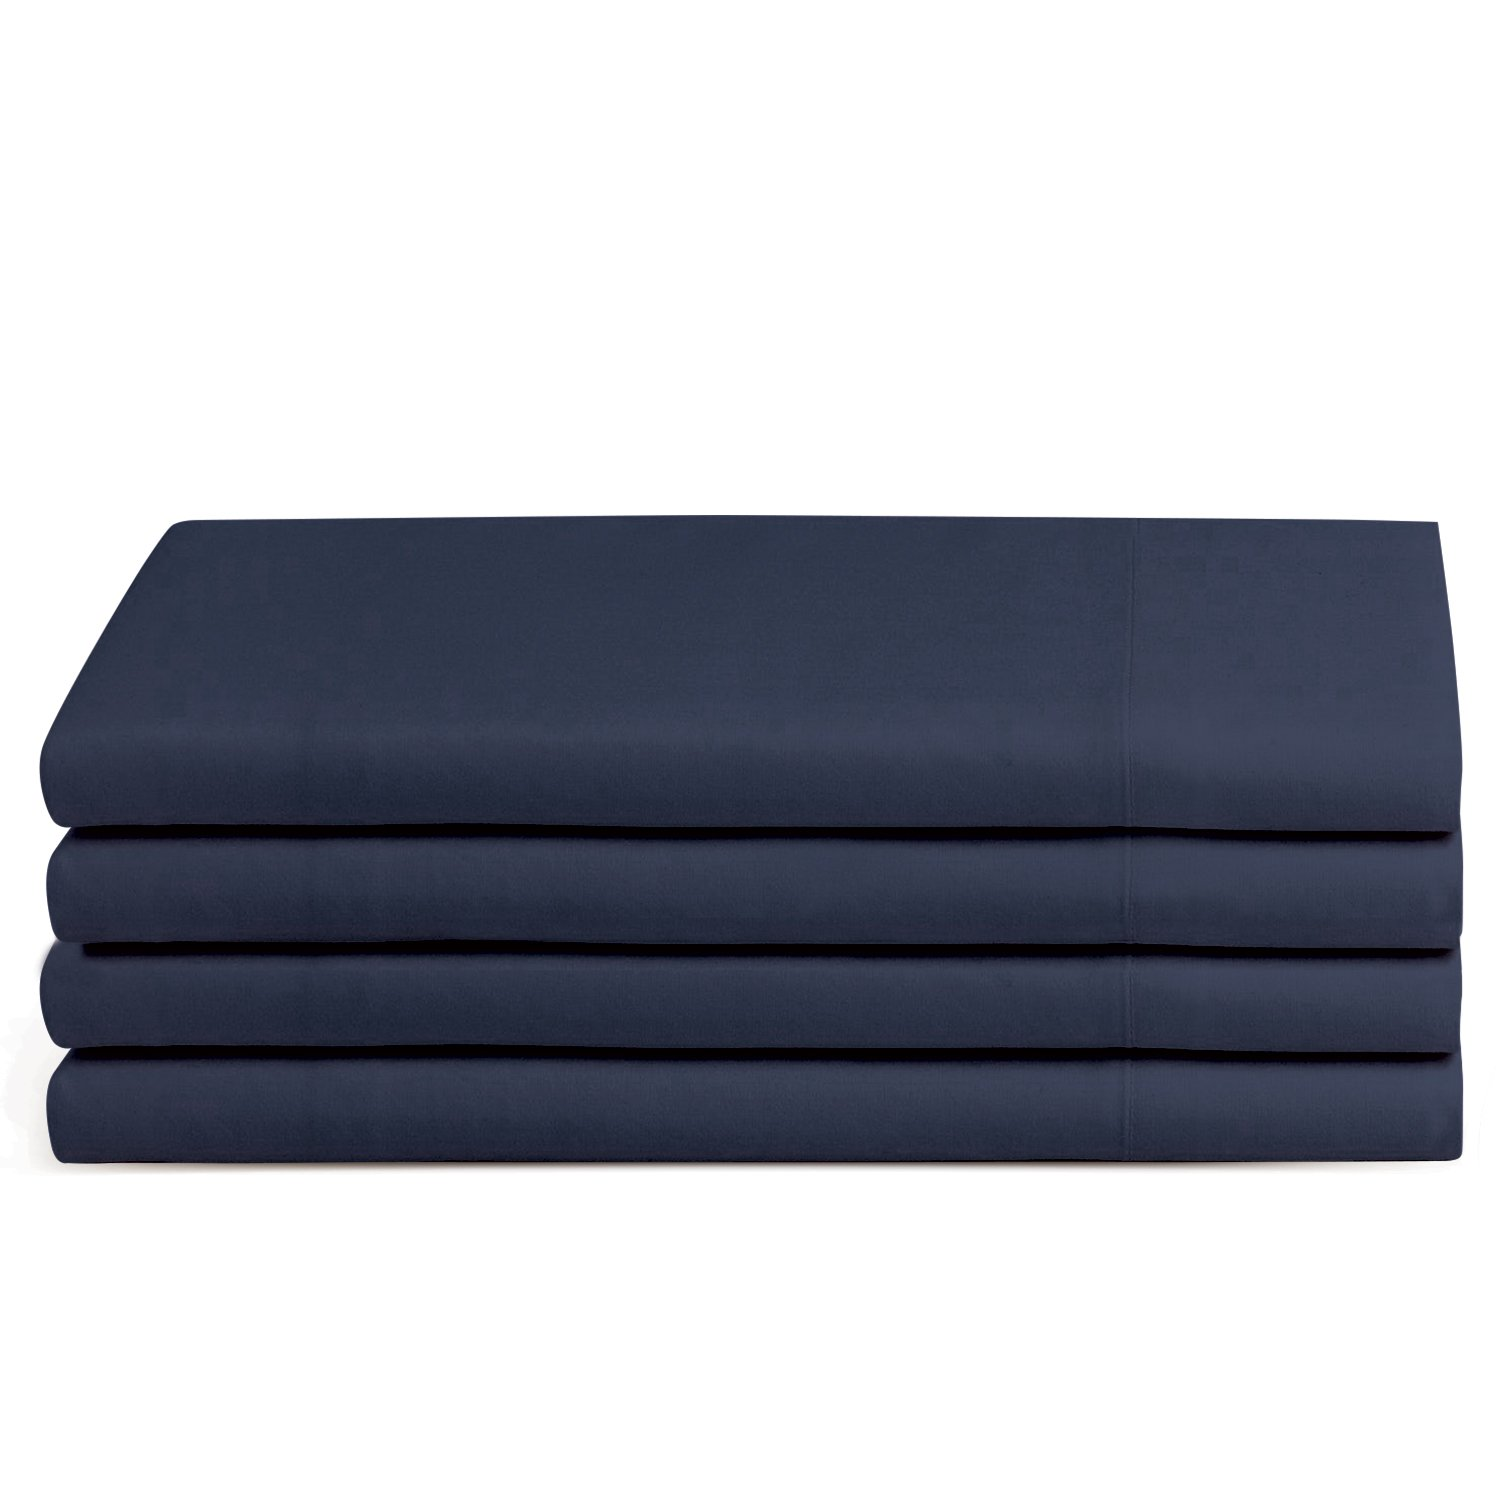 Beckham Hotel Collection Luxury Pillow Case - King - Navy